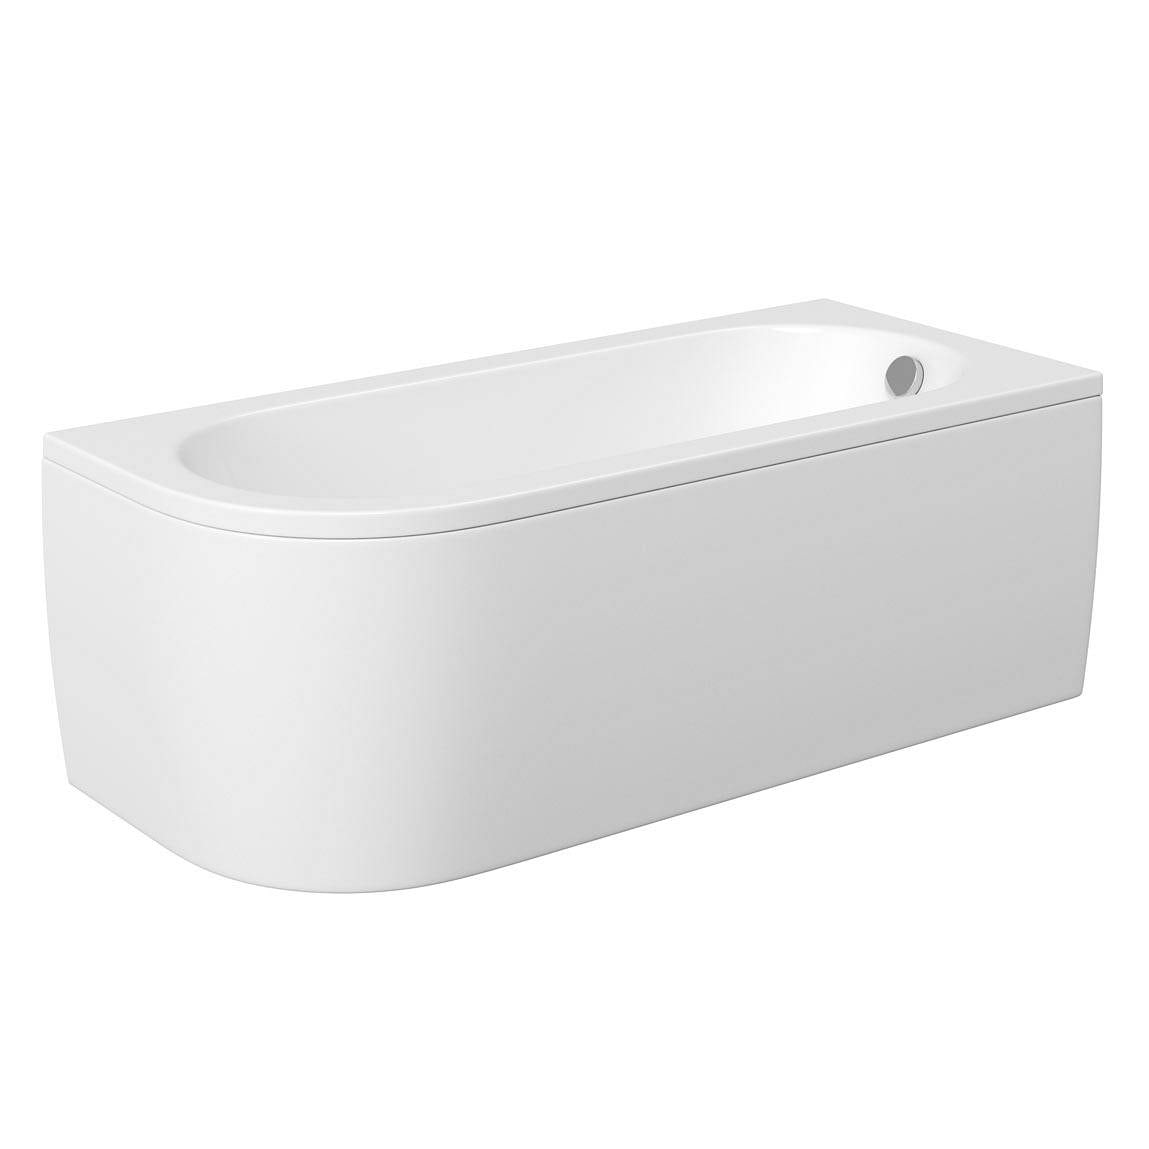 Orchard Elsdon D shaped right handed single ended bath with panel